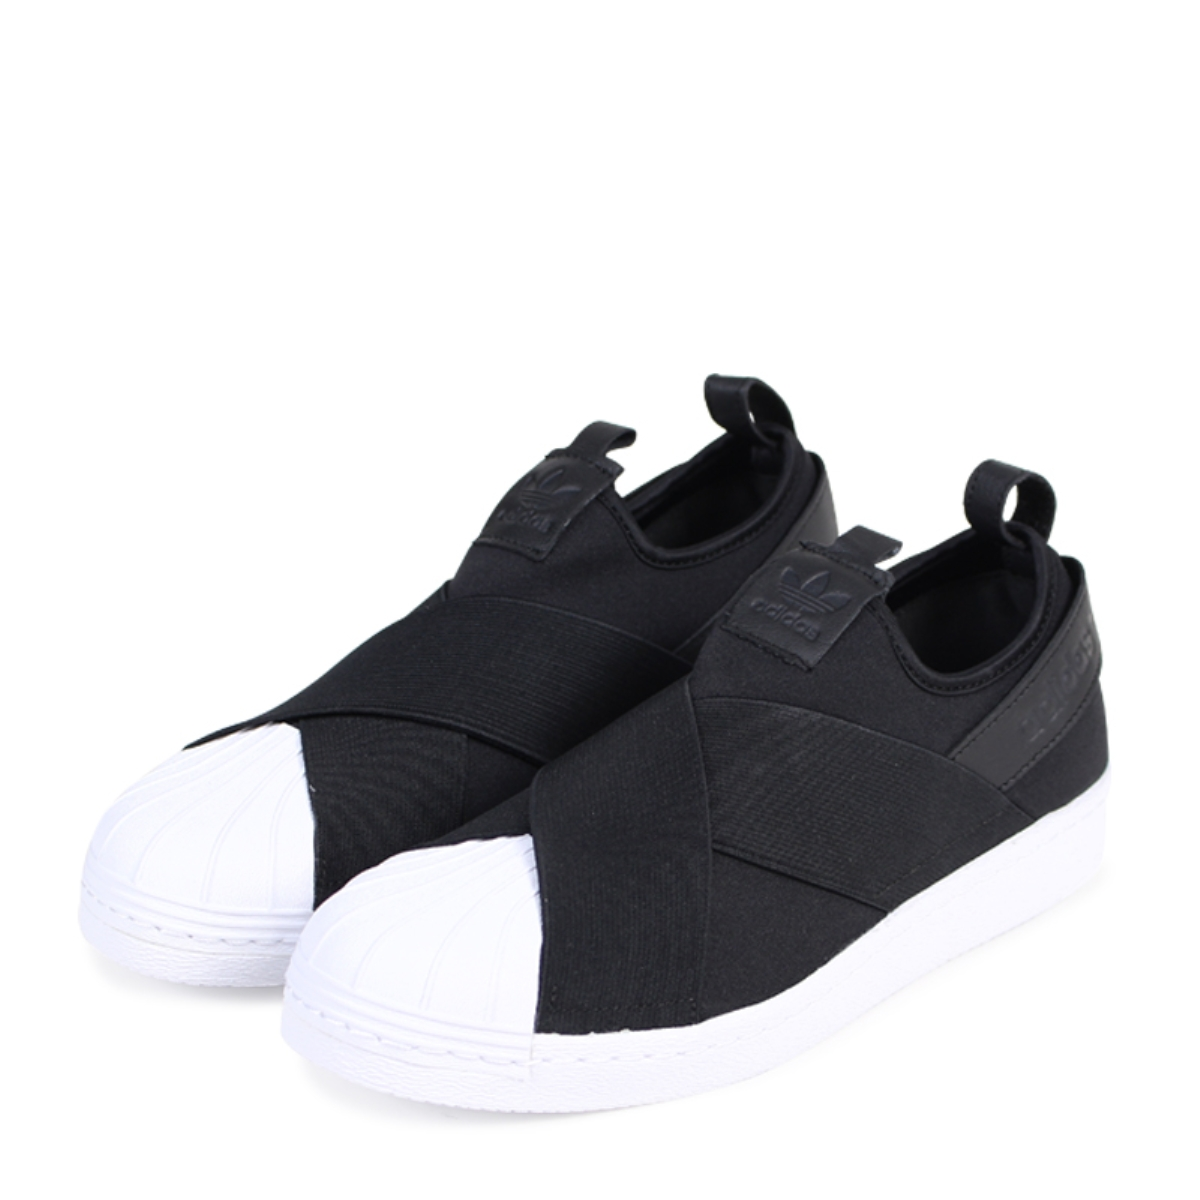 buy popular dee39 0b87a adidas Originals SUPERSTAR SLIP-ON Adidas superstar sneakers slip-ons men  gap Dis BZ0112 black originals [1/30 Shinnyu load] [181]